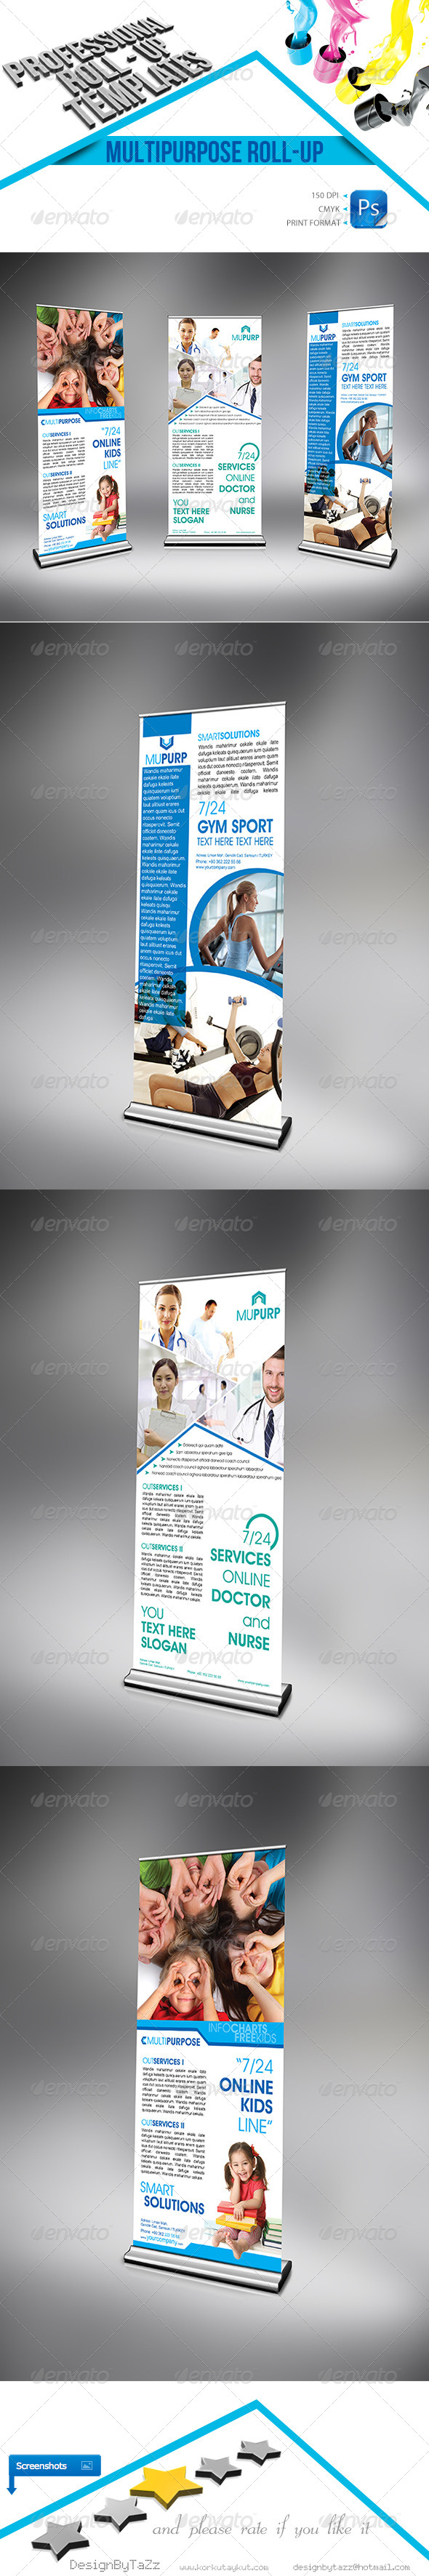 Multipurpose Business Roll up - Signage Print Templates